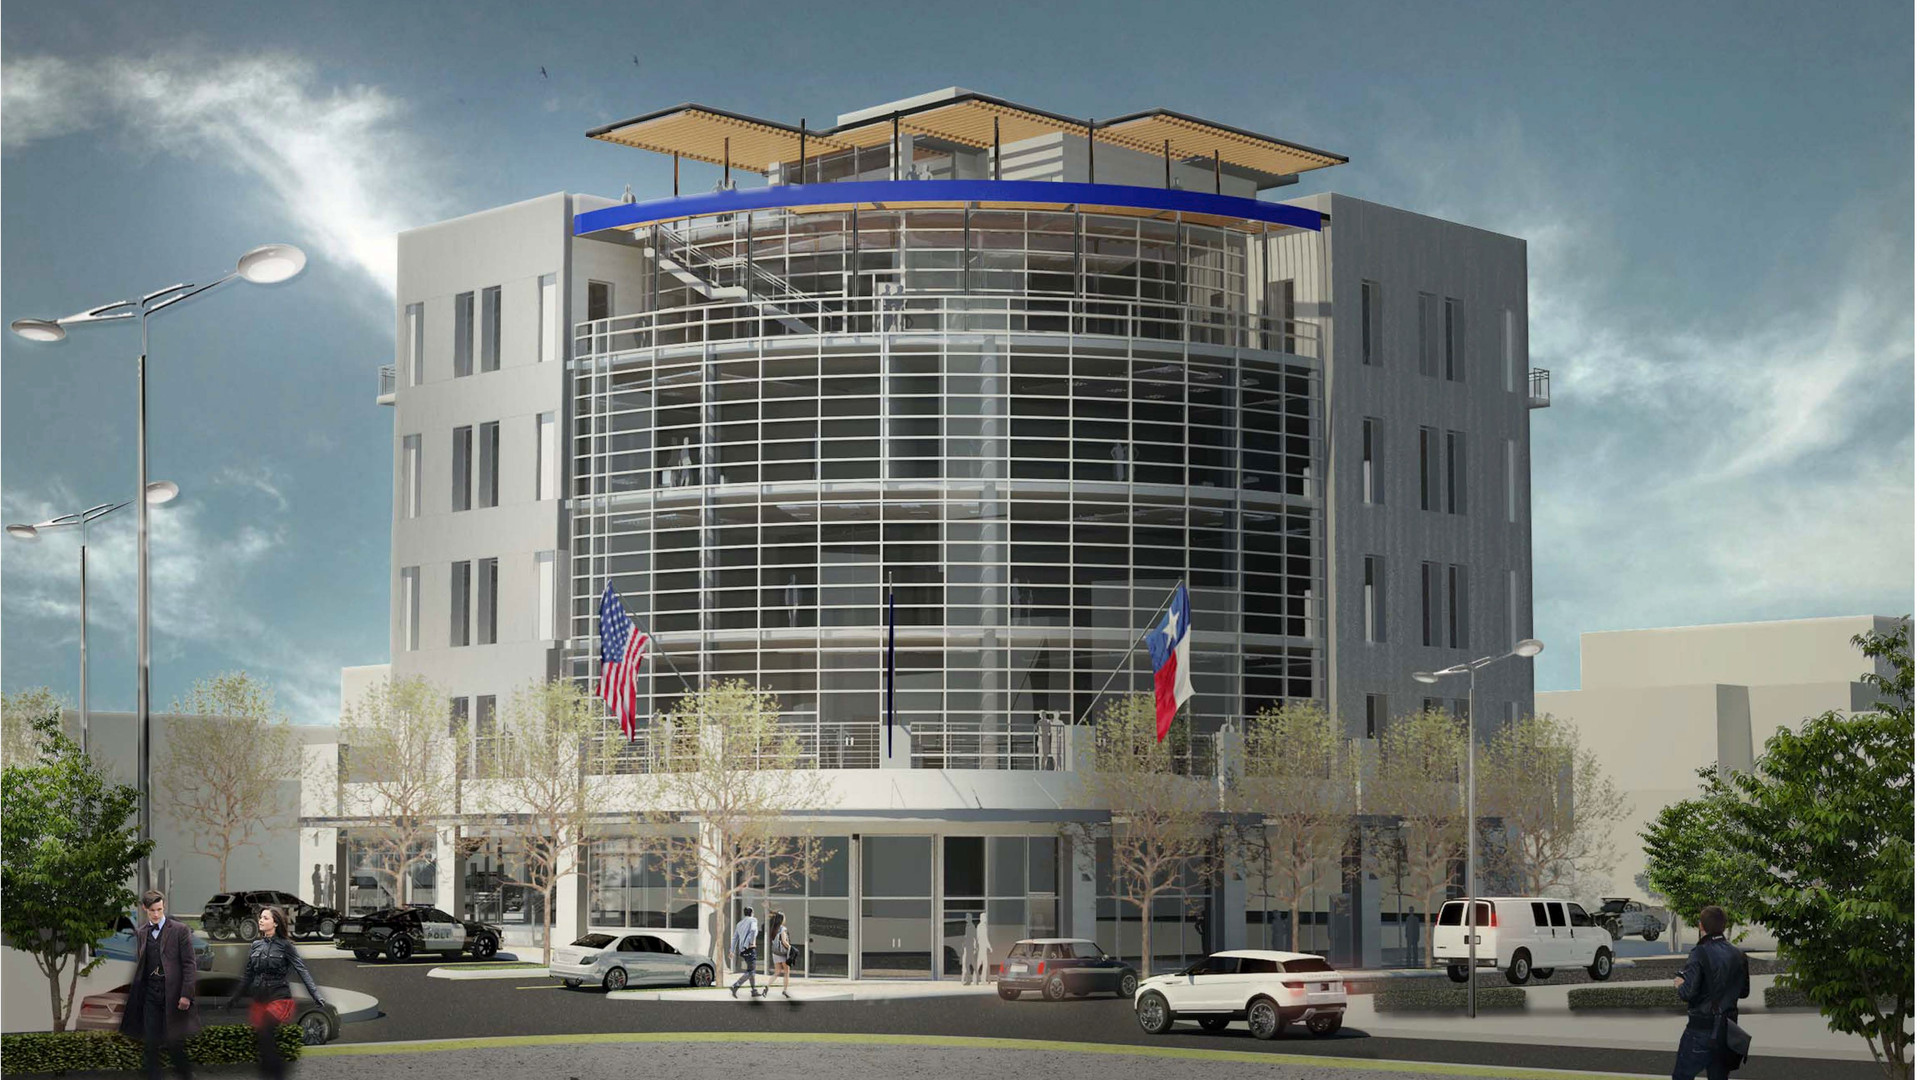 FWPOA Office Bldg. rendering, Ft. Worth,